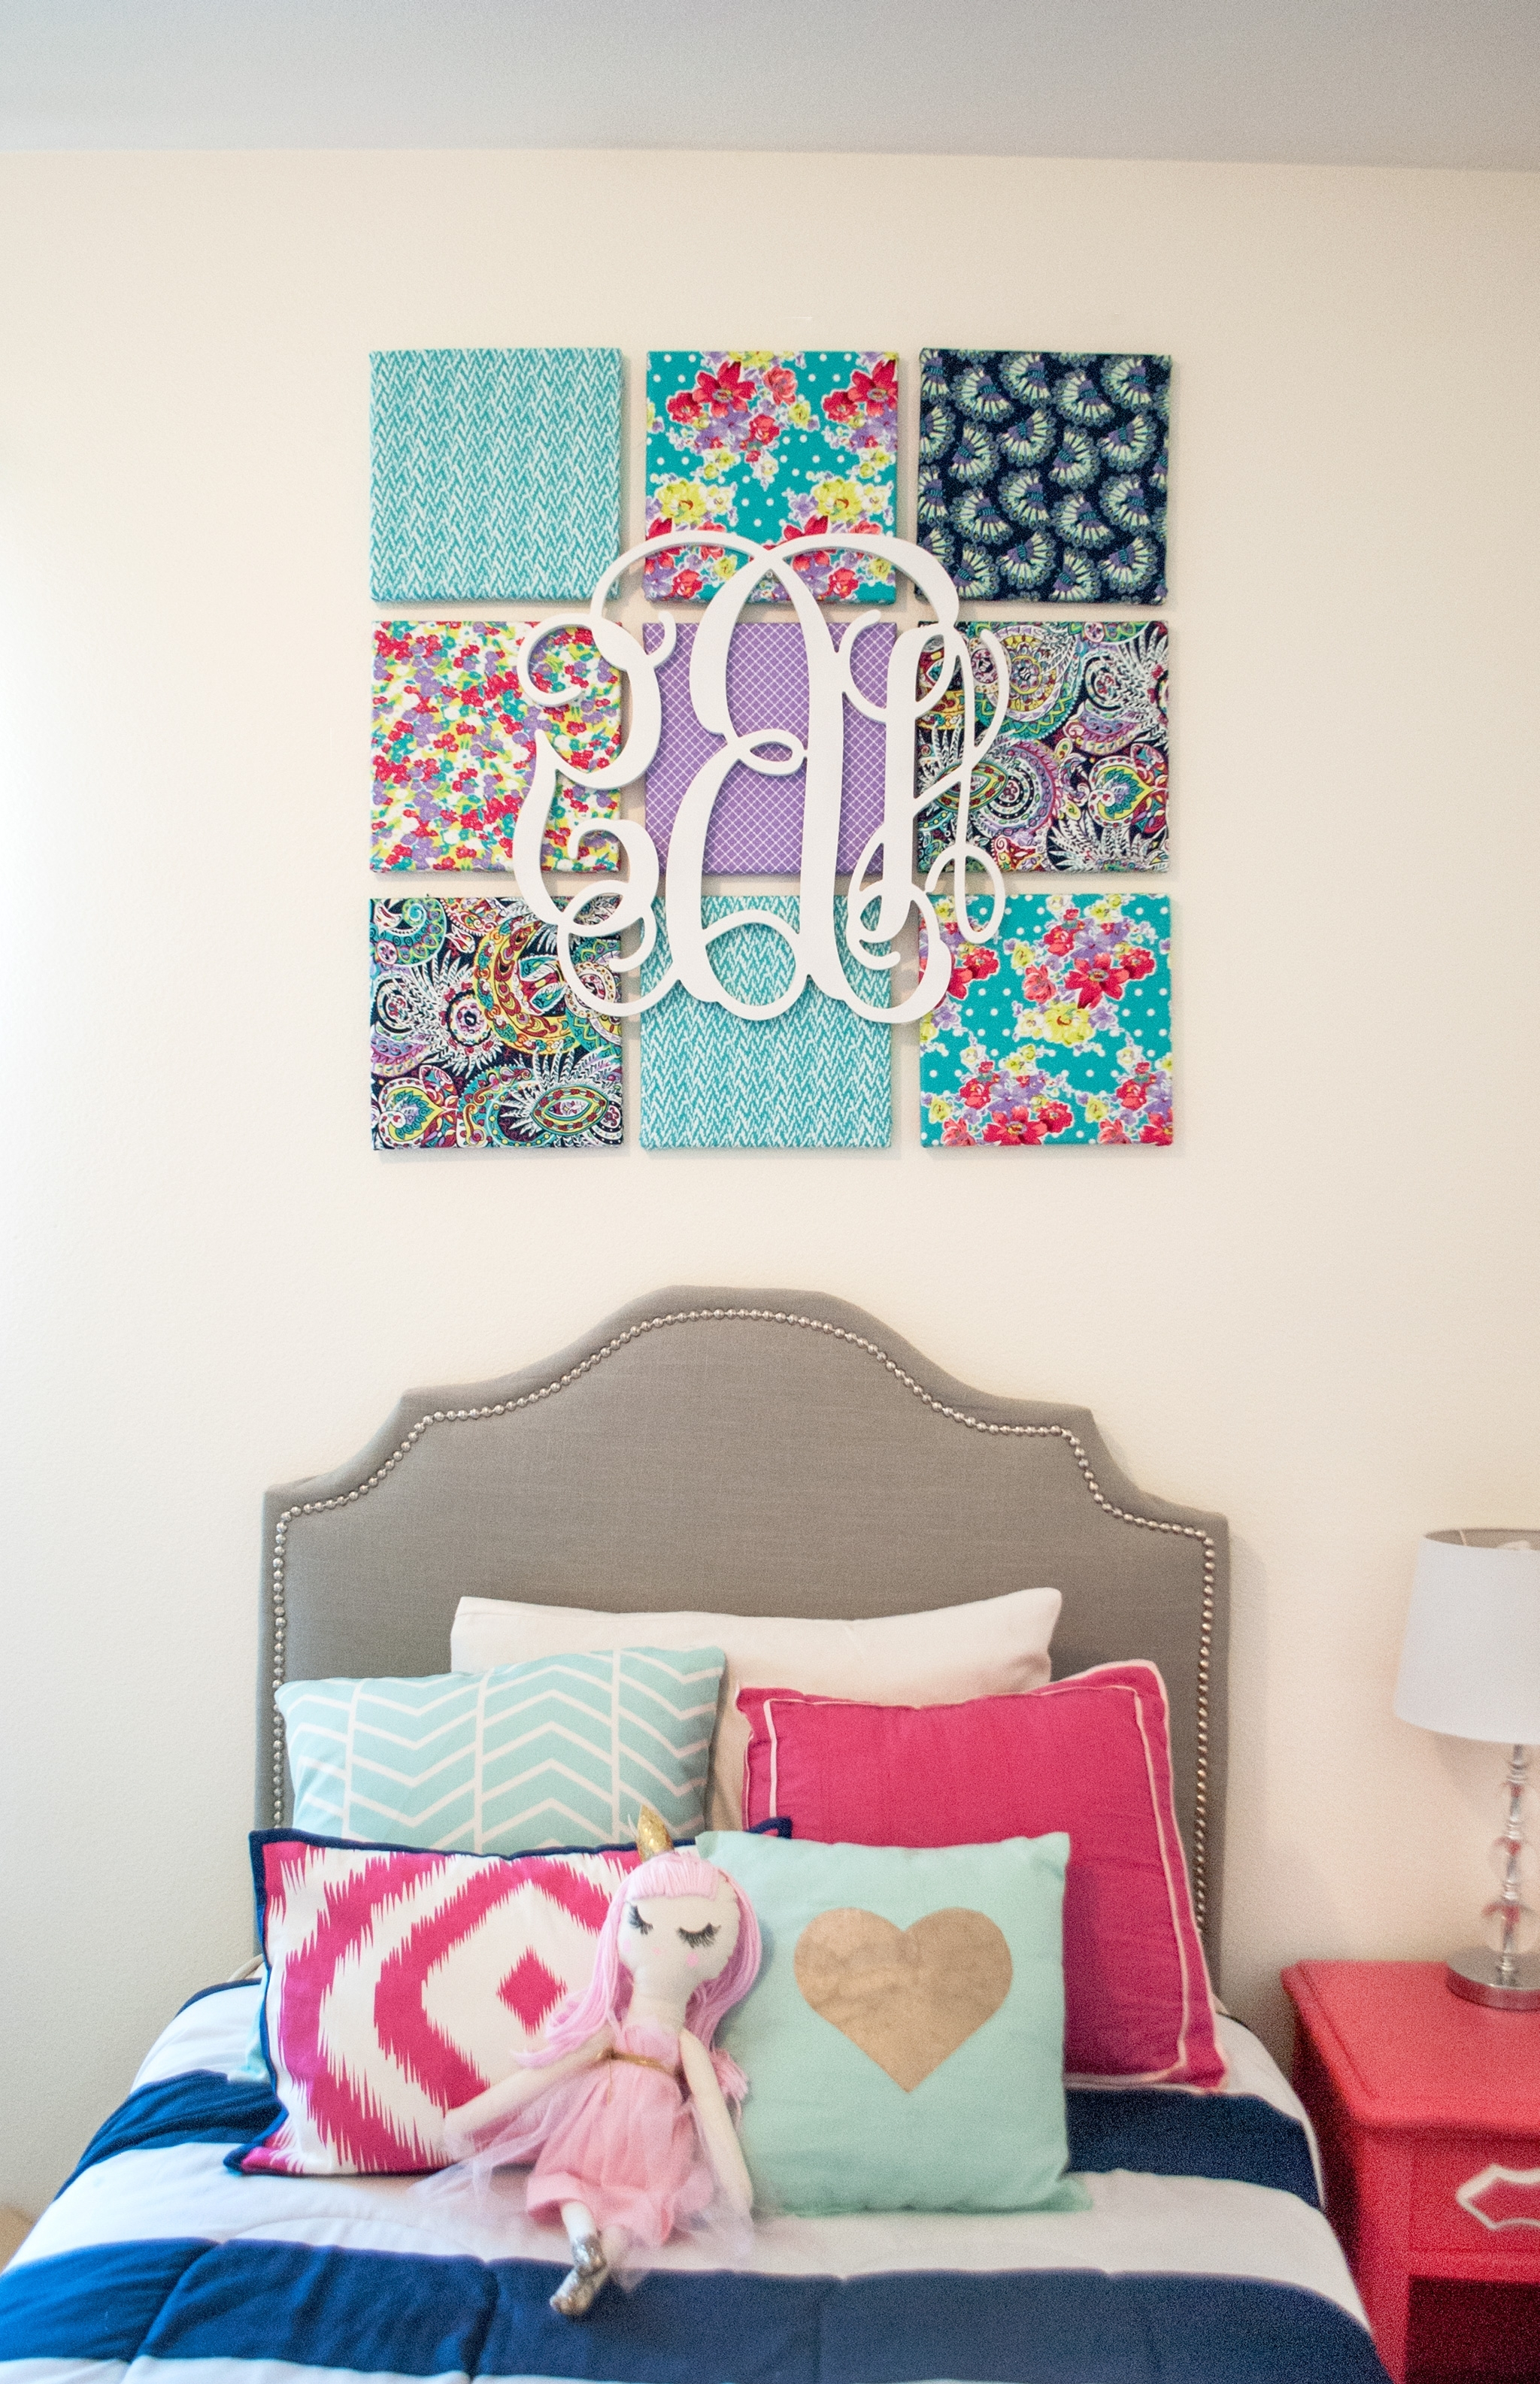 Best And Newest Wall Art Decor Ideas: Personalized Initial Named Diy Fabric Wall Inside Personalized Fabric Wall Art (Gallery 1 of 15)